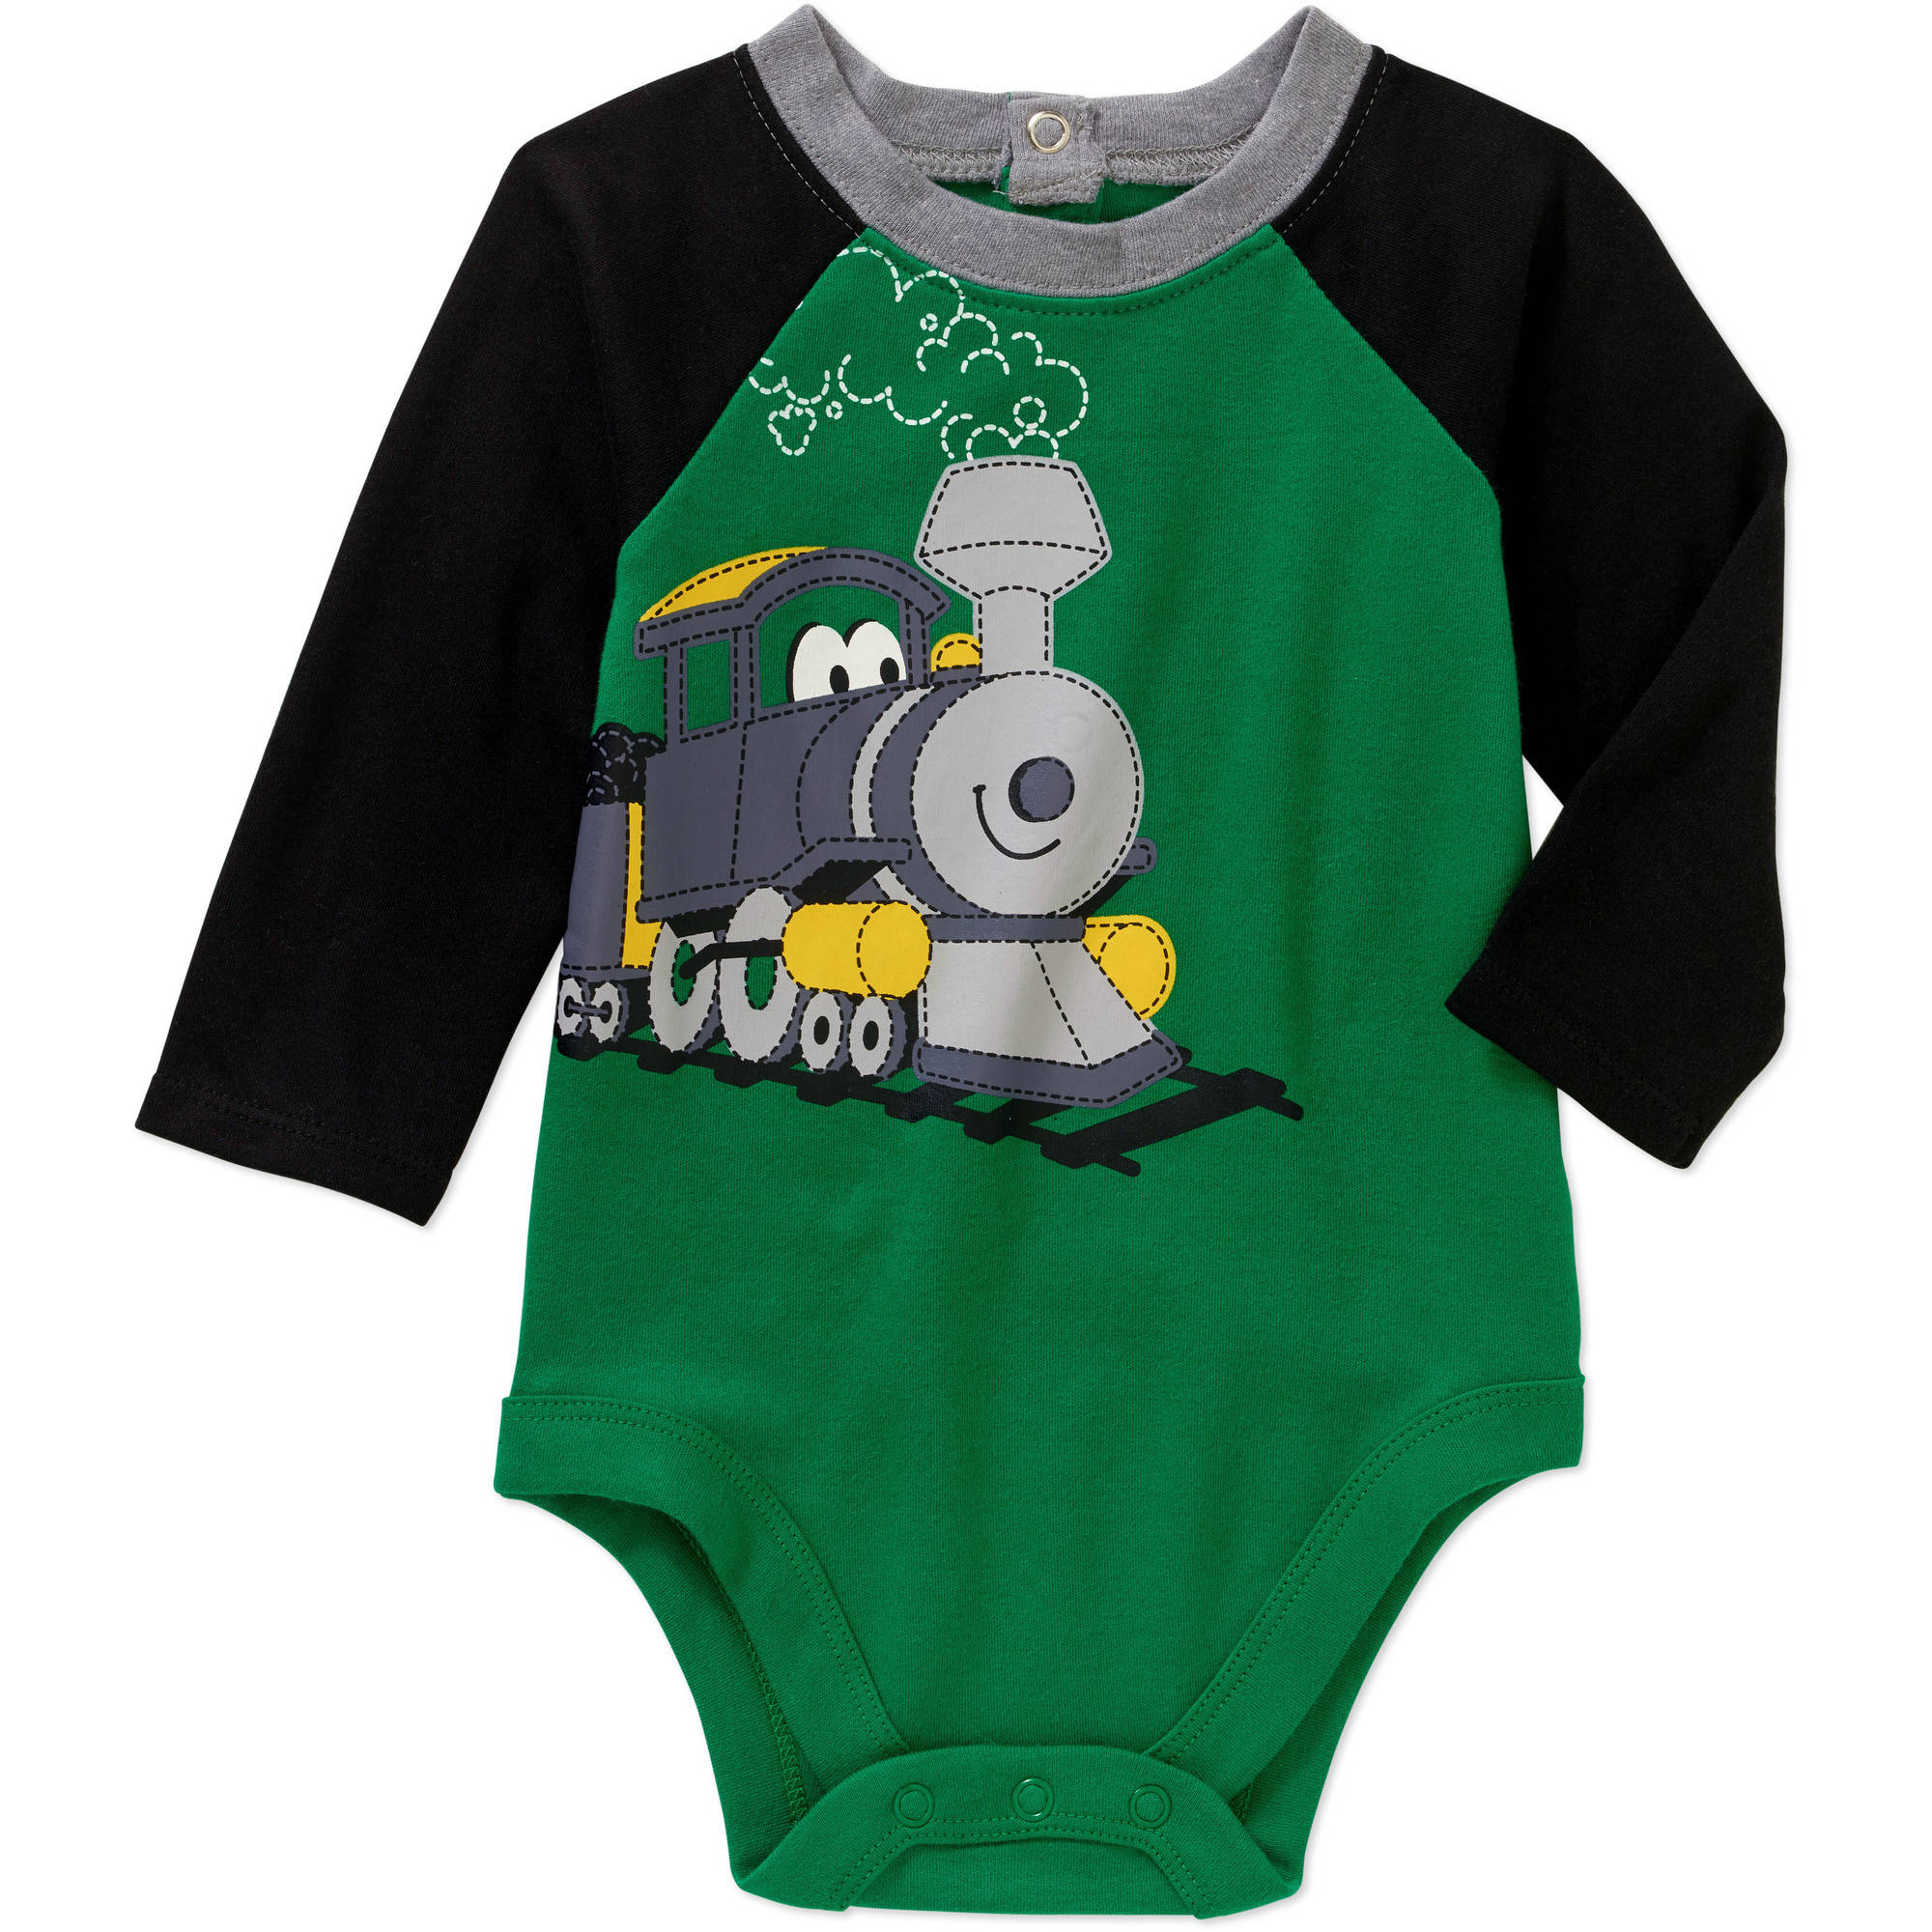 Garanimals Newborn Baby Boys' Long Sleeve Graphic Raglan Bodysuit